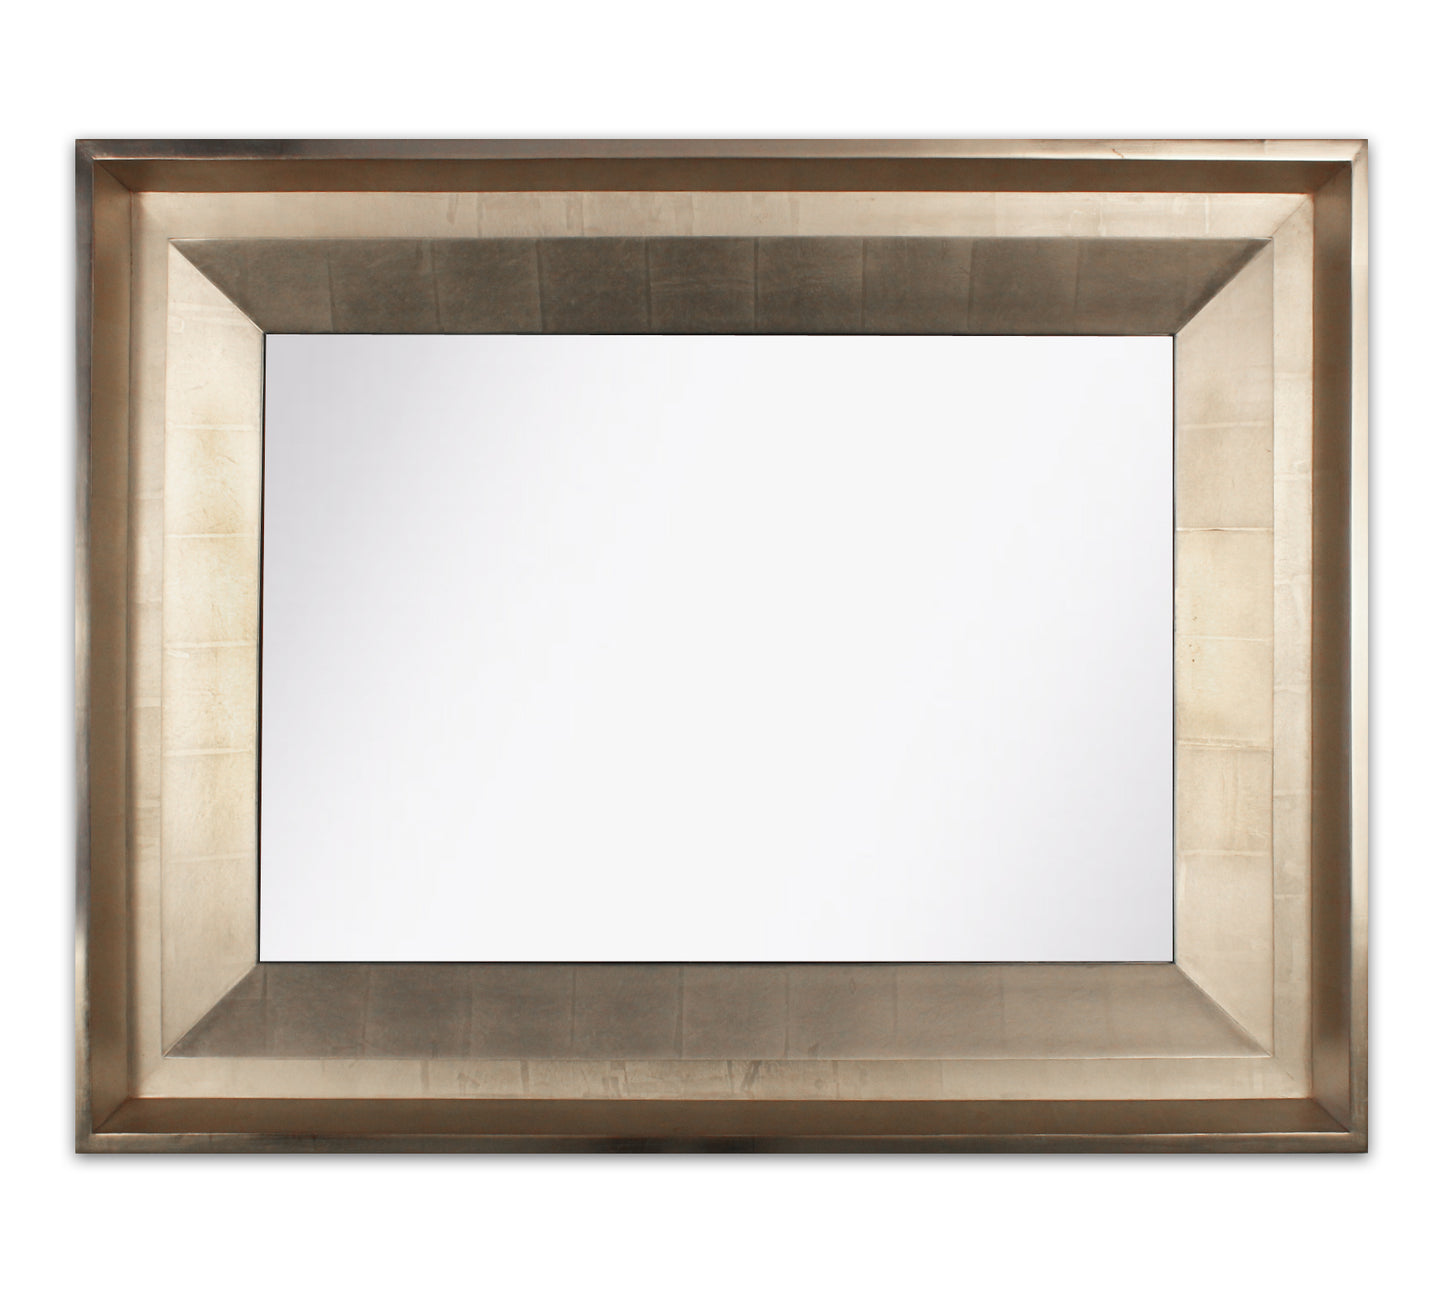 Modernist Angle Mirror (4 1/2